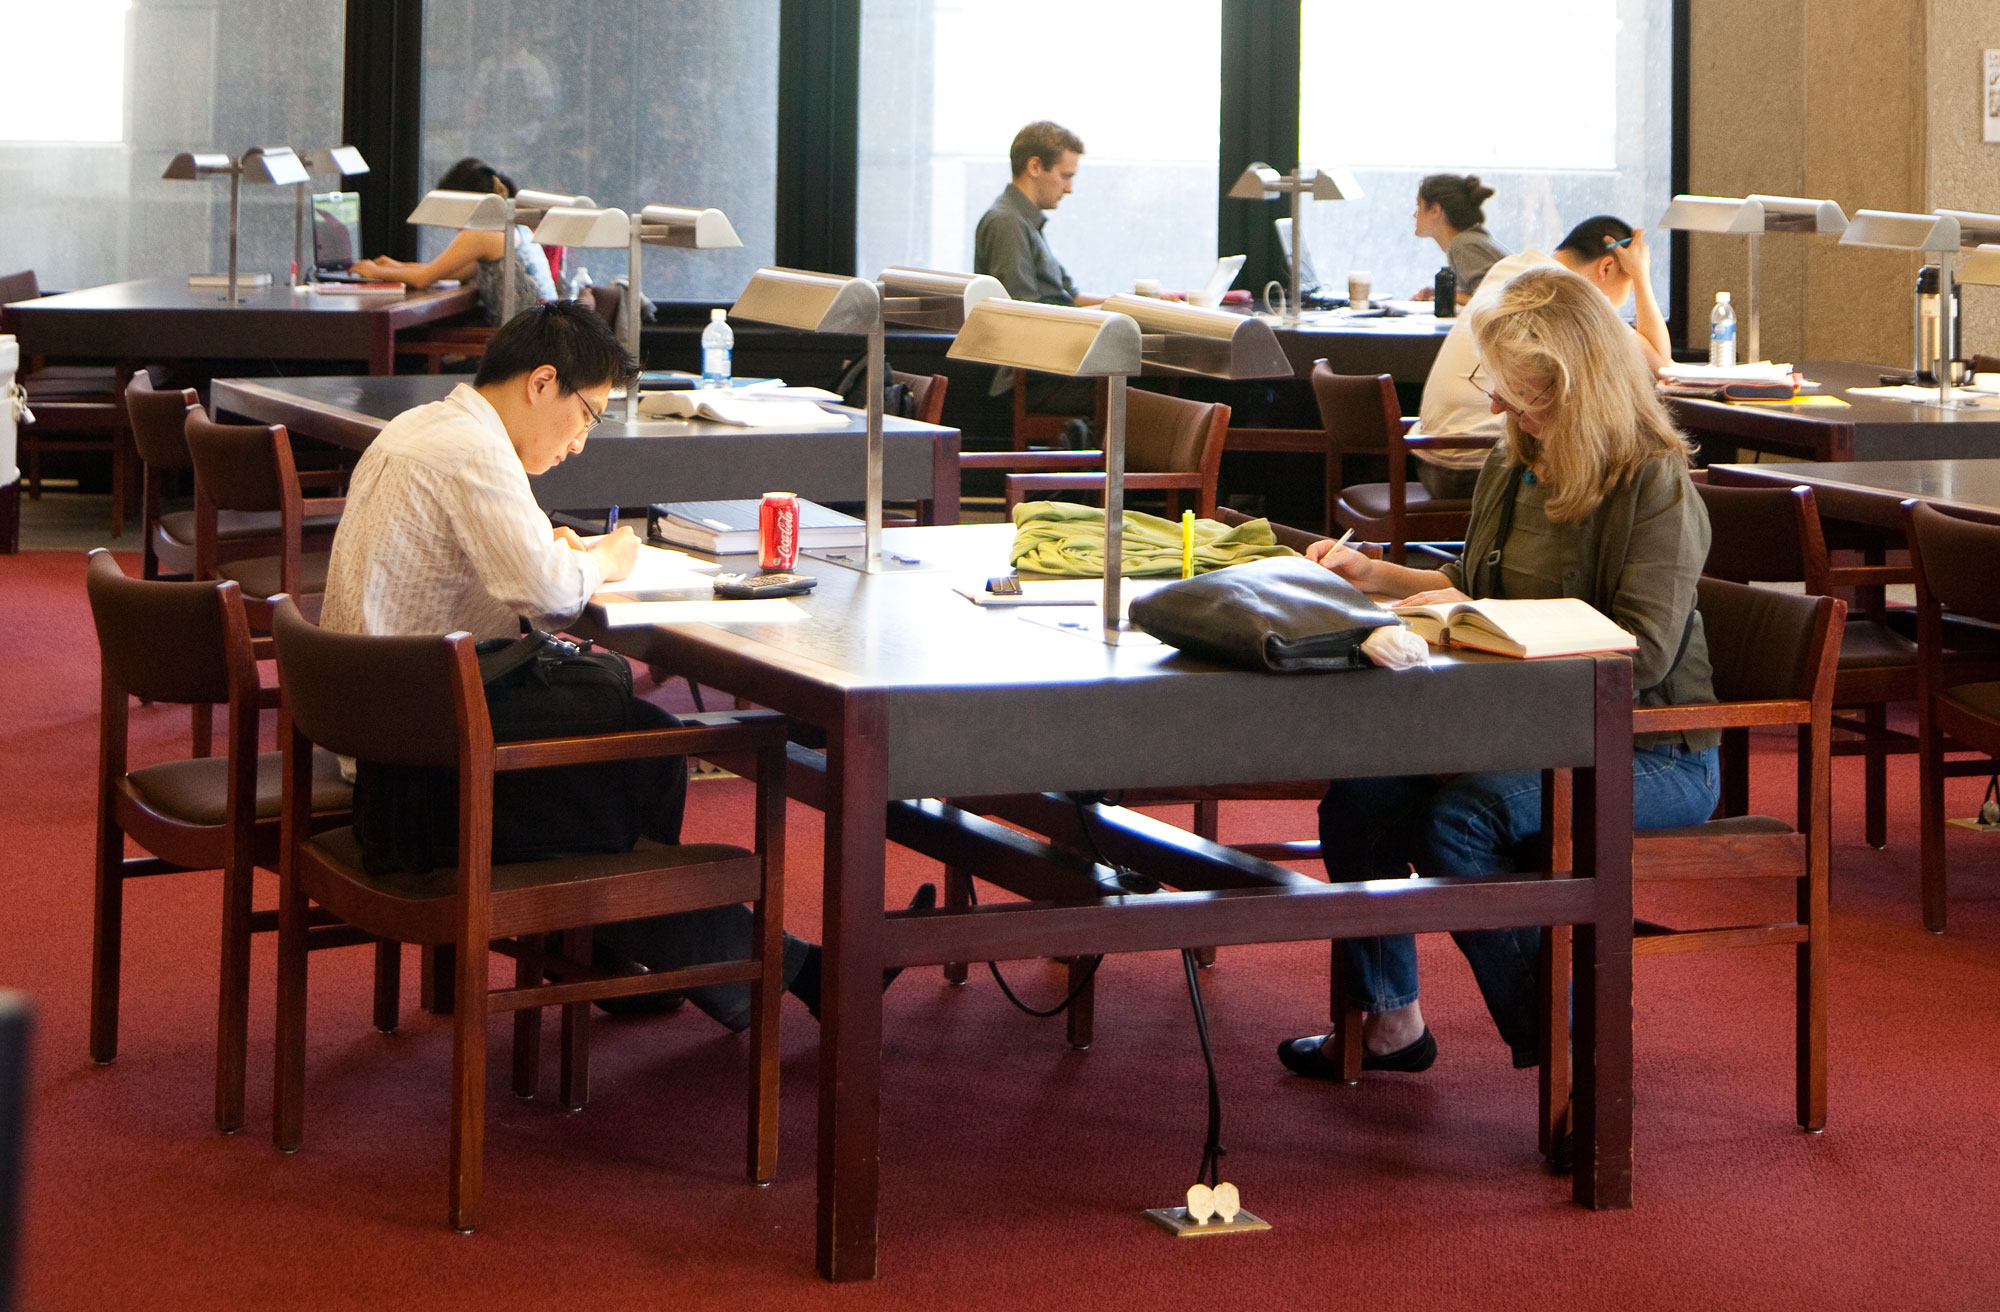 Students studying at University of Toronto's Robarts Library. UNIVERSITY OF TORONTO.